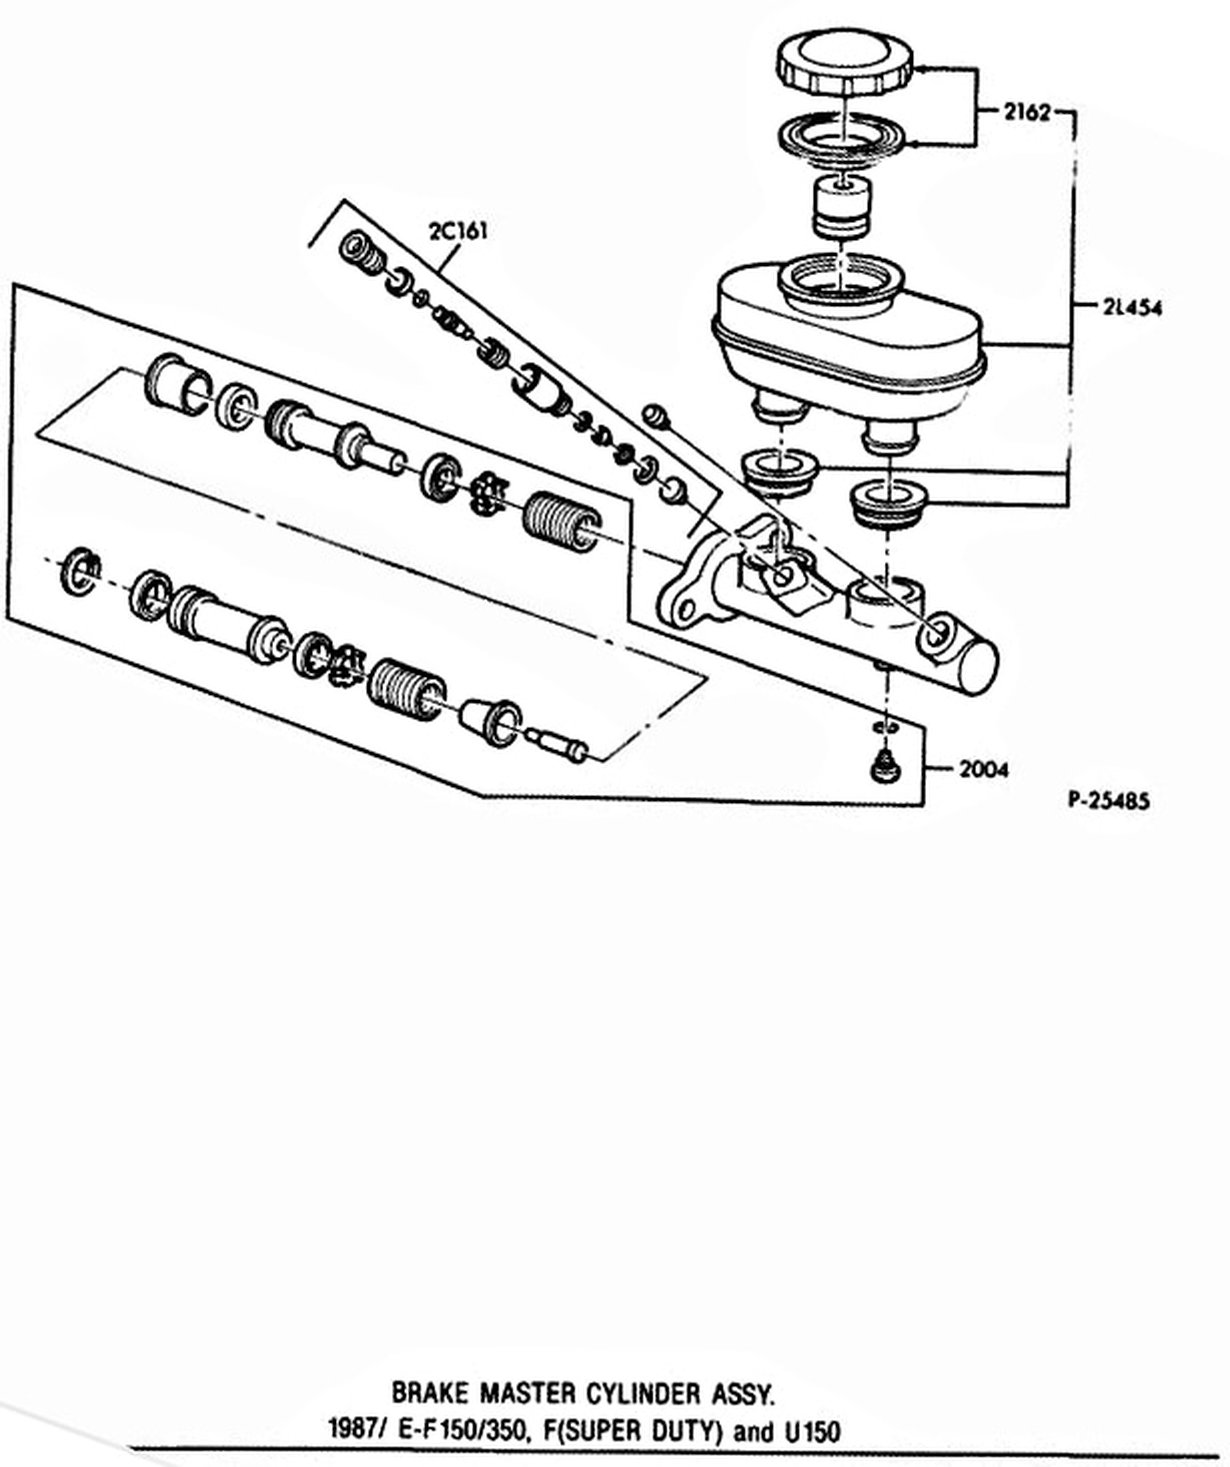 hight resolution of the push rod has an adjustment screw to maintain the correct relationship between the booster control valve plunger and the master cylinder piston